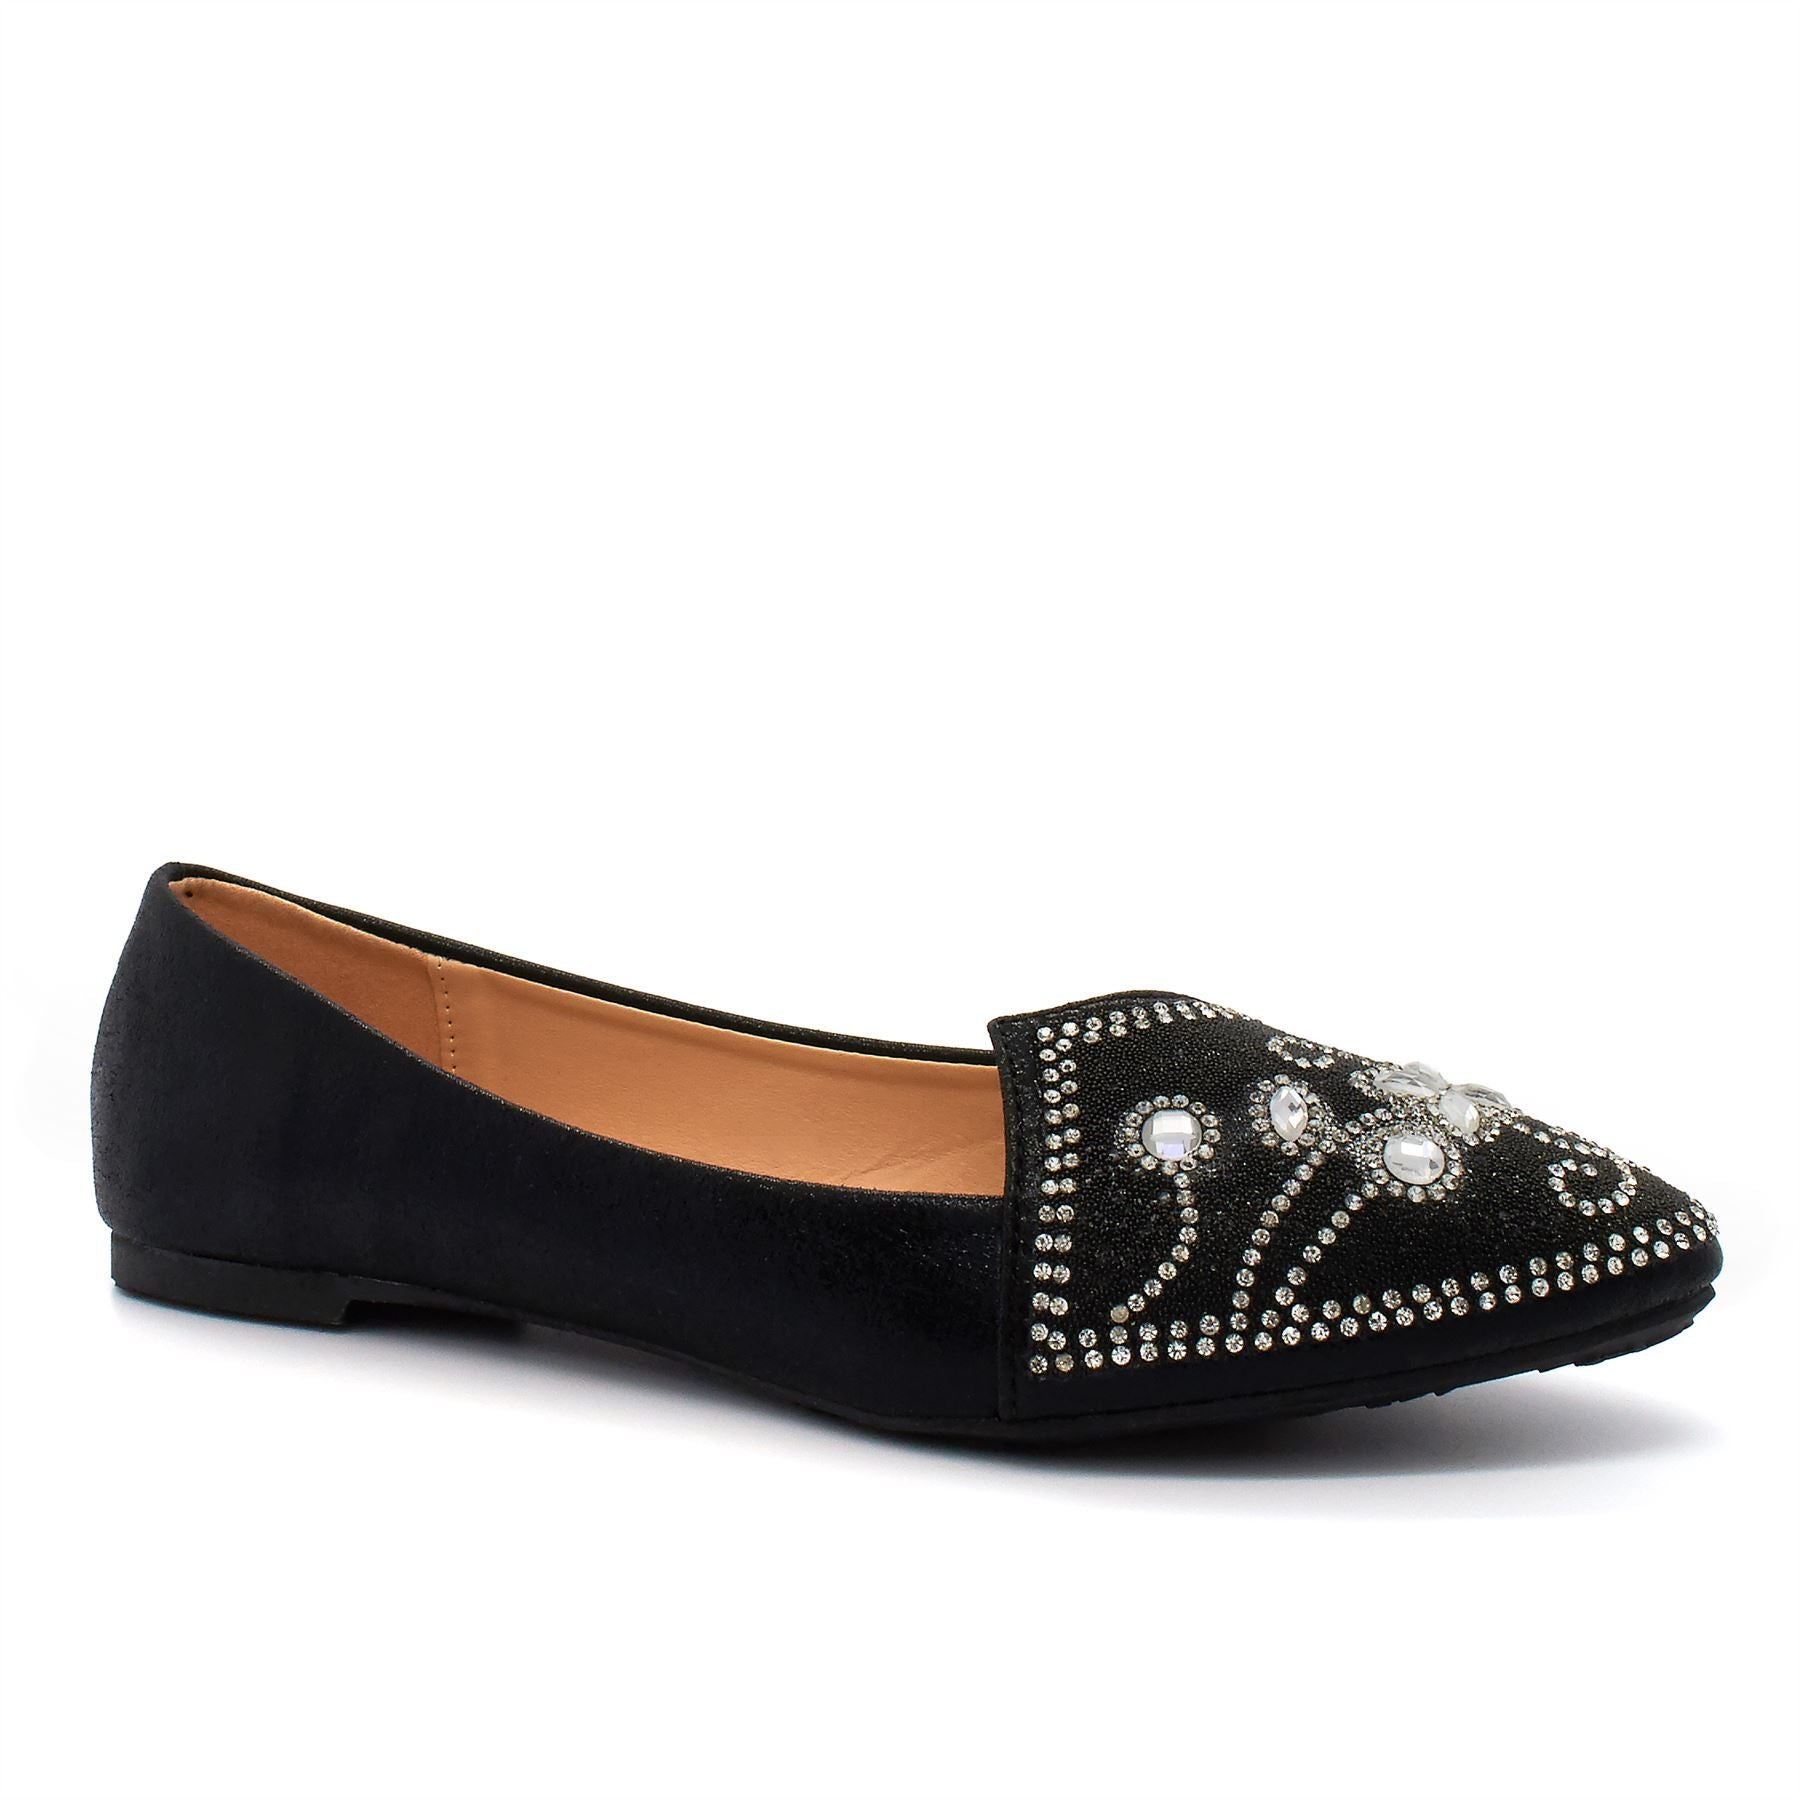 Black Pointed Ballet Flats